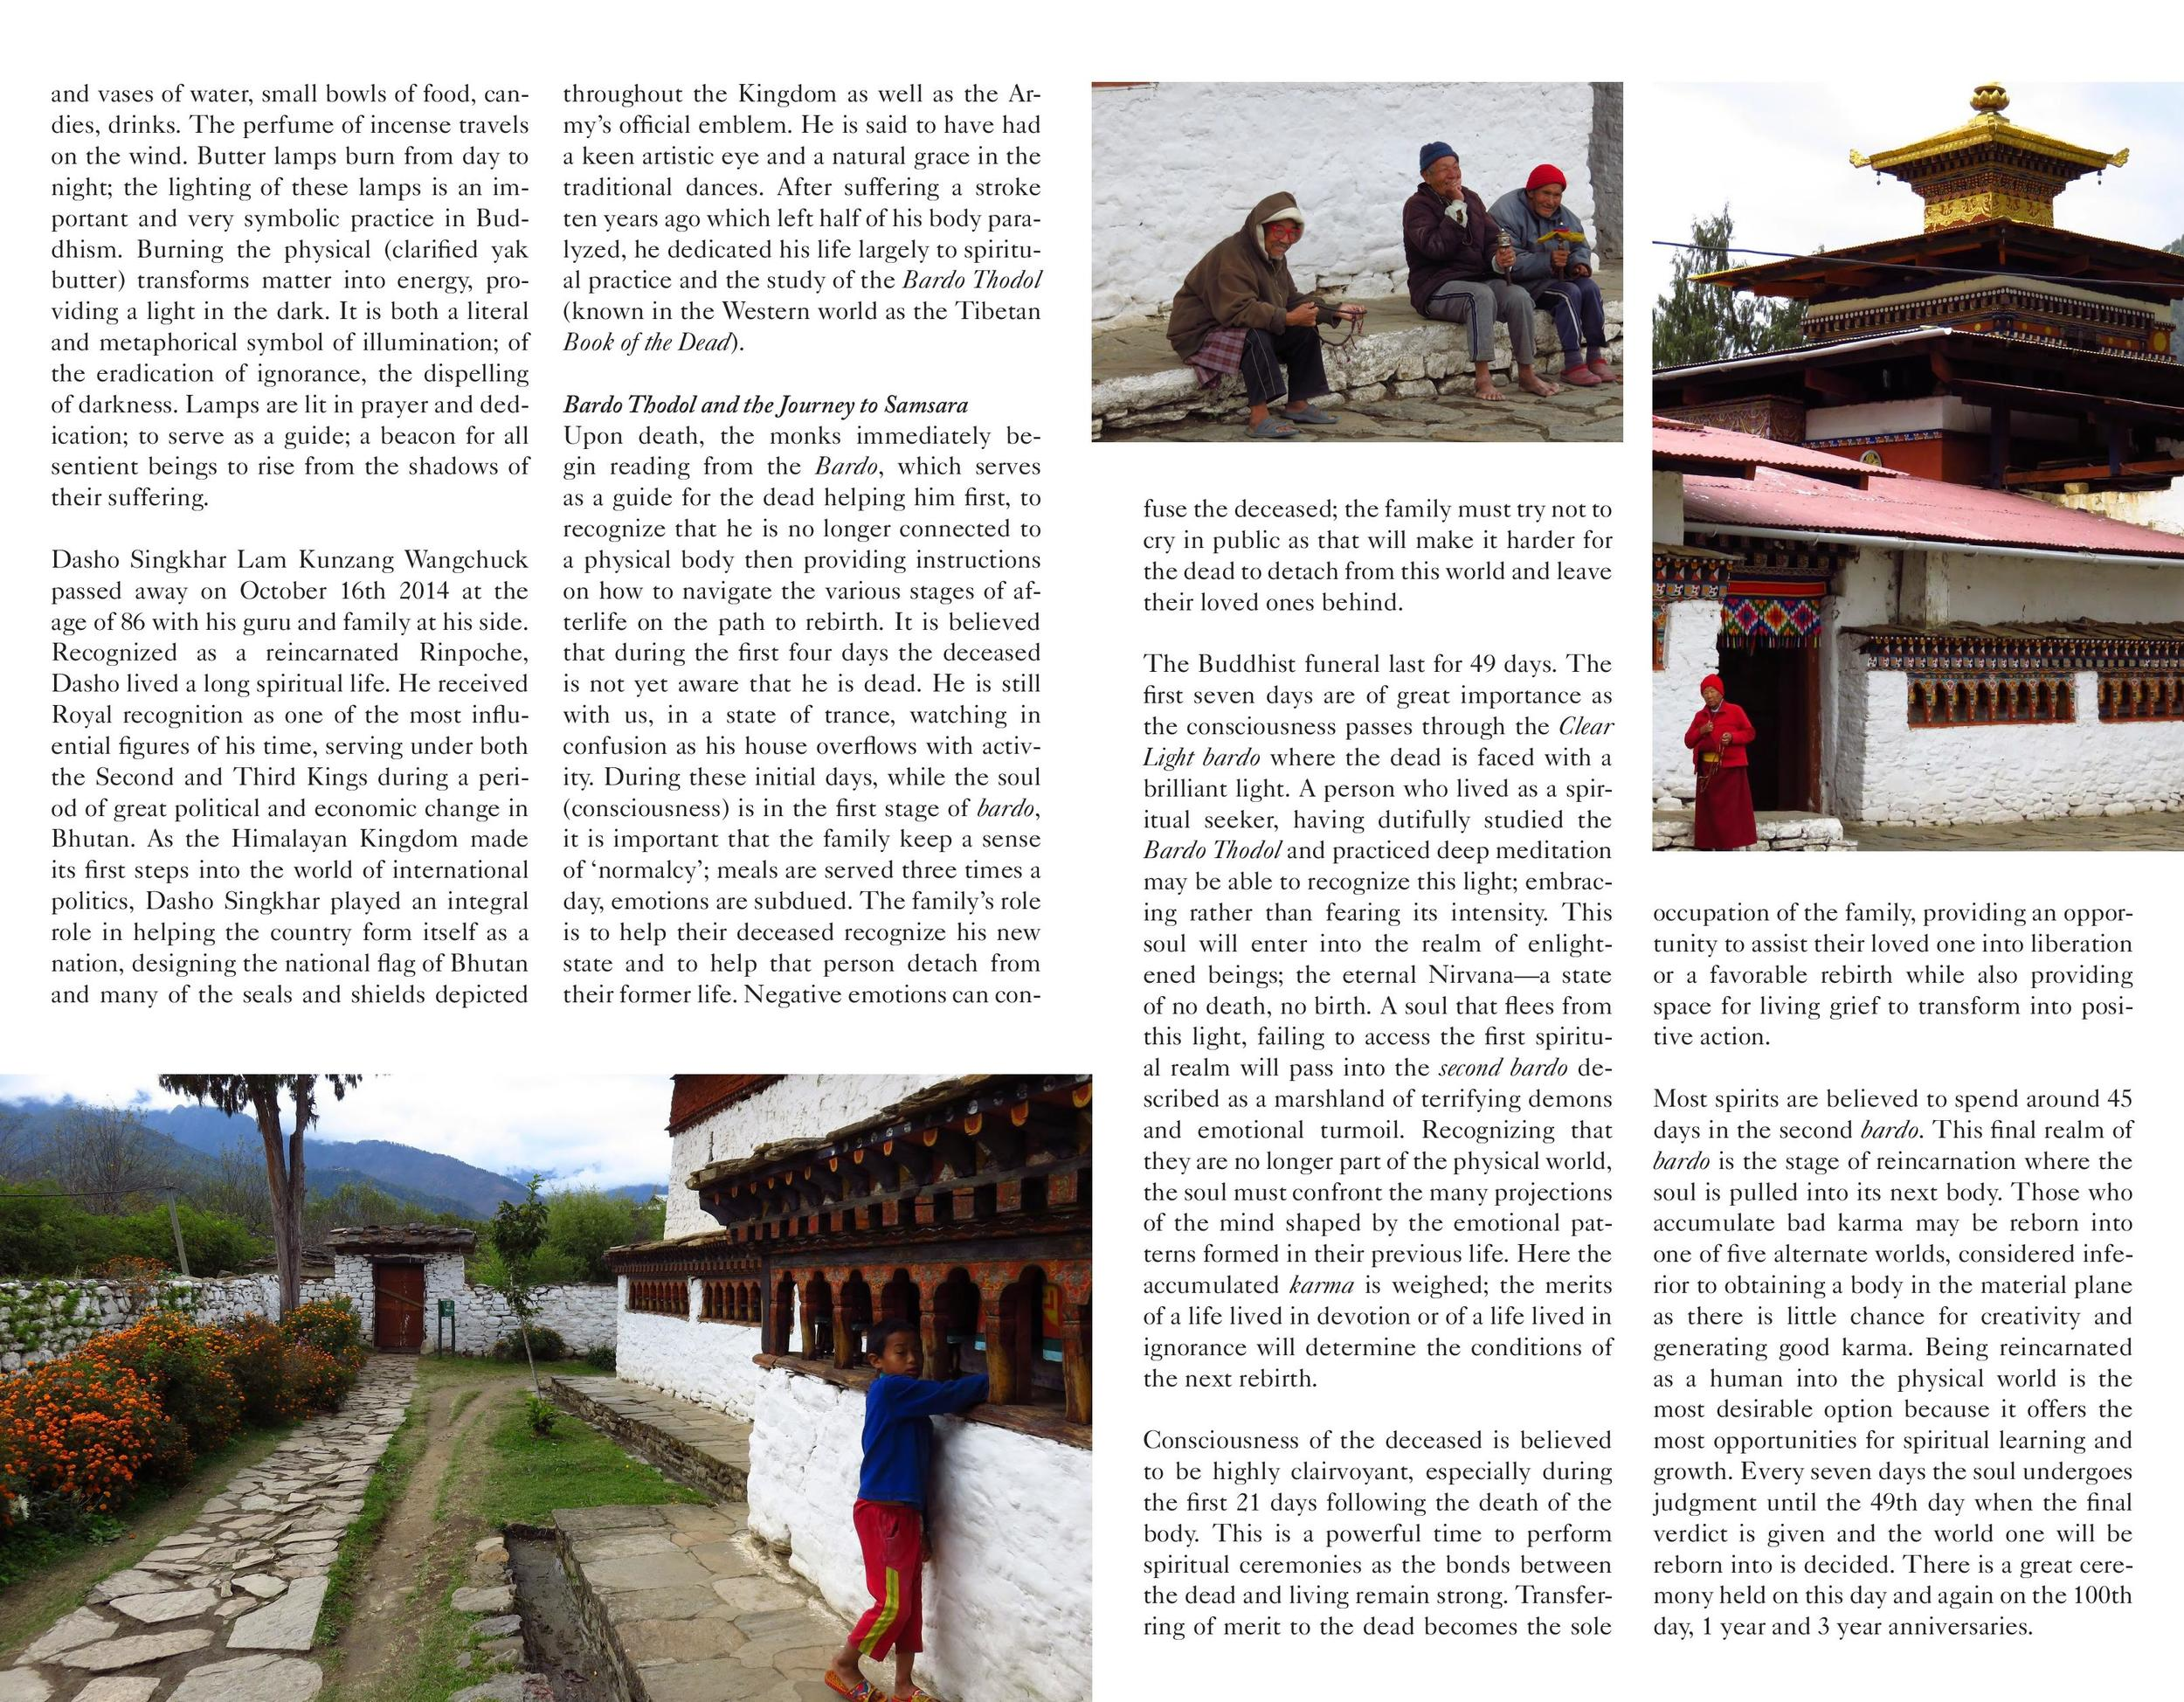 travels_with_a_burro_bhutan_02-page-013.jpg